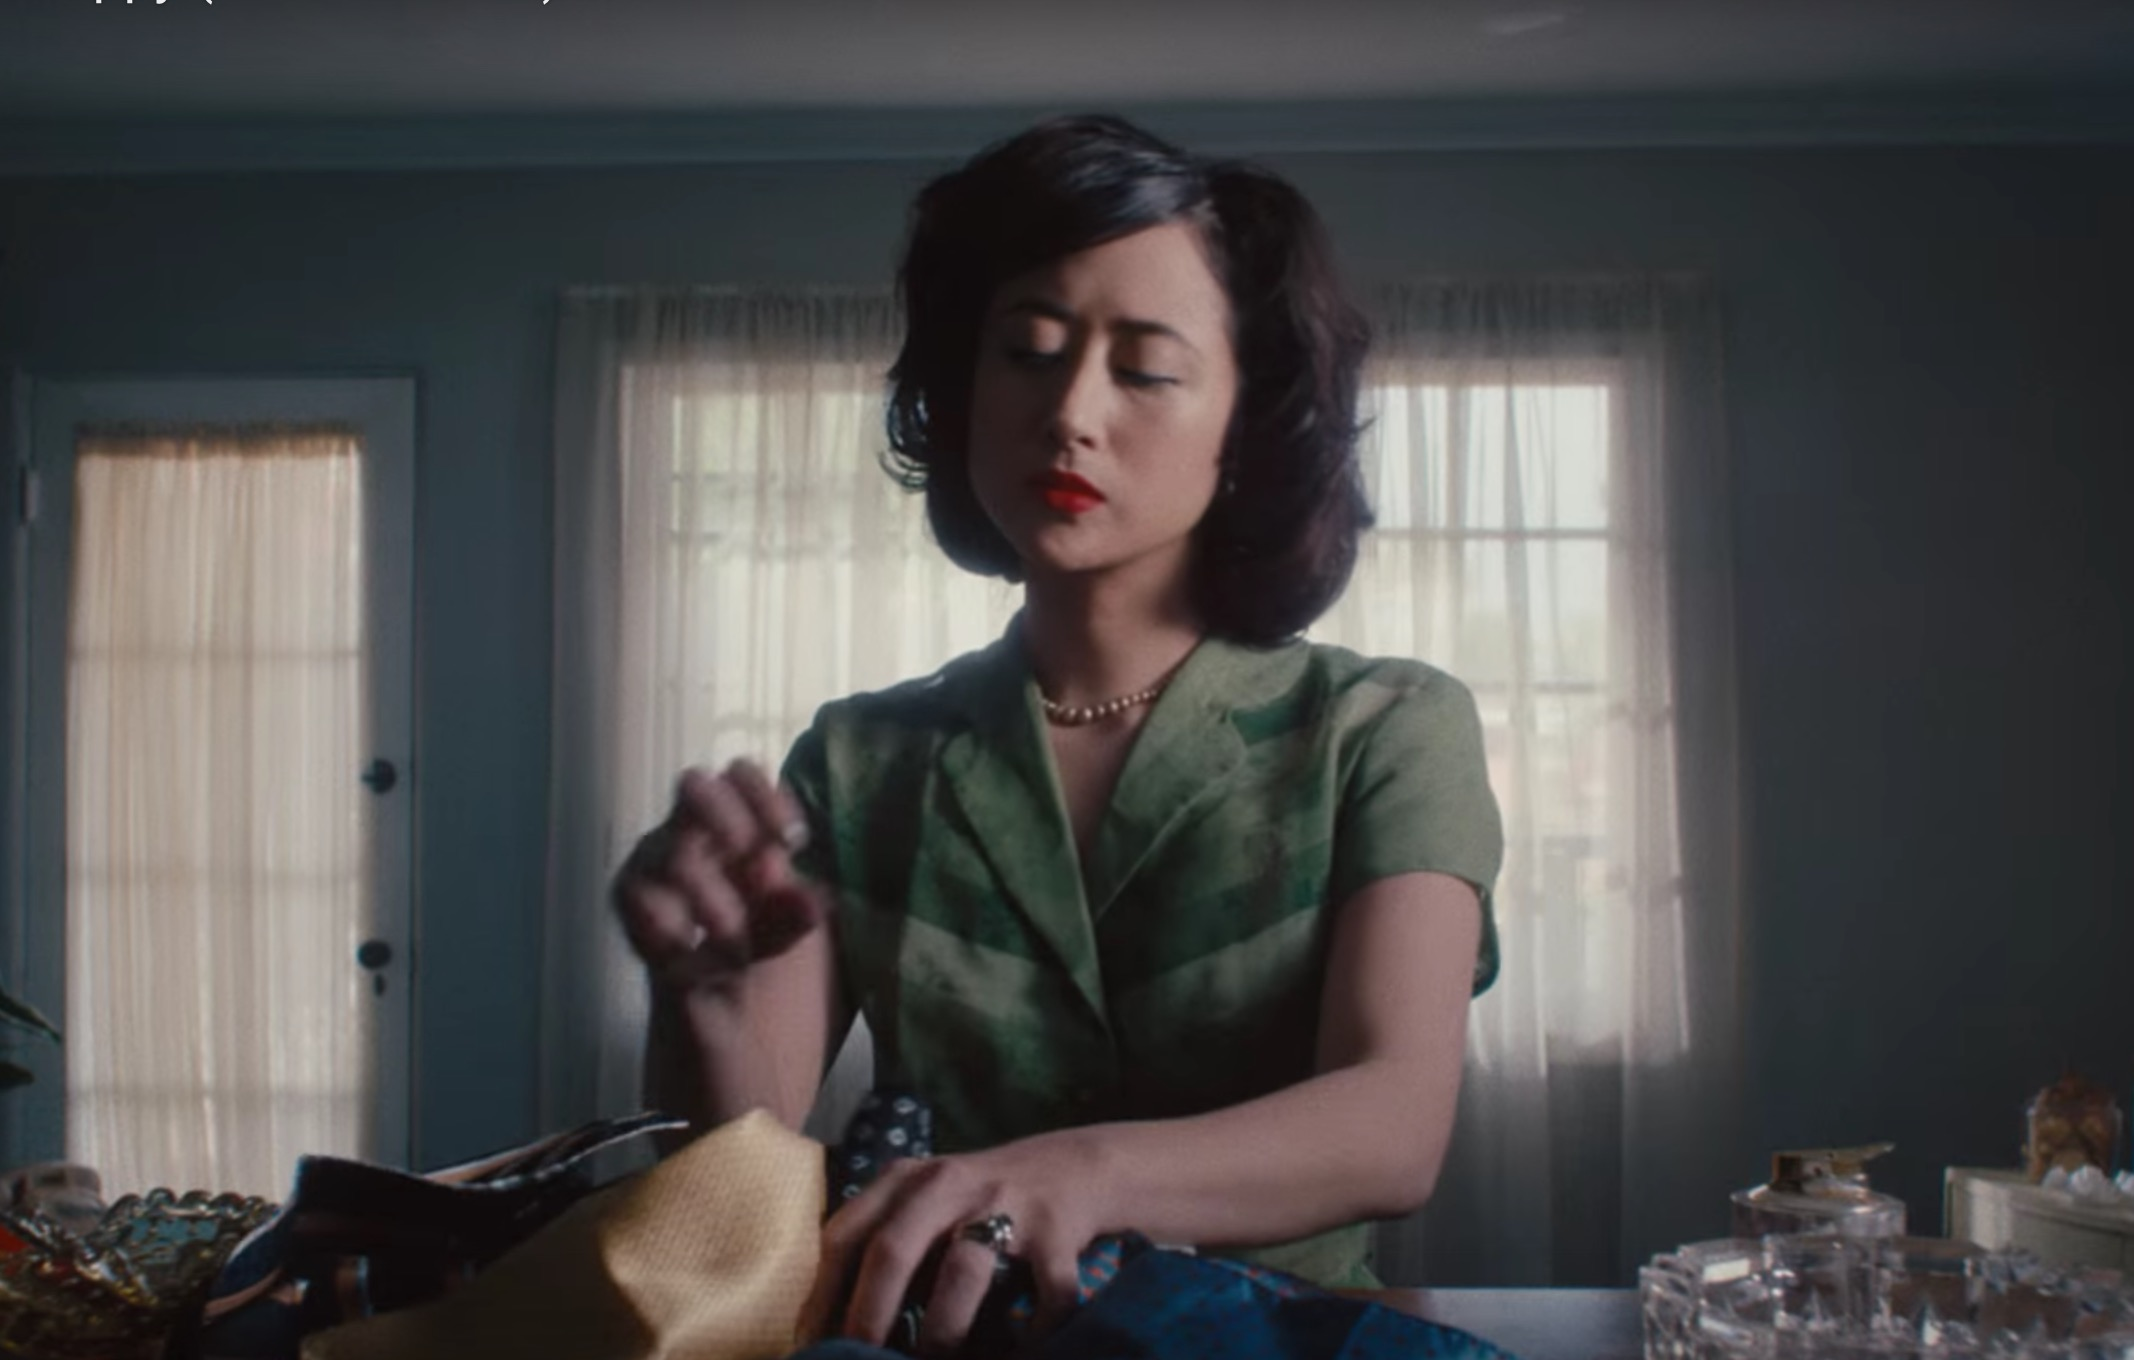 Mitski shares ridiculously gory 'Happy' video